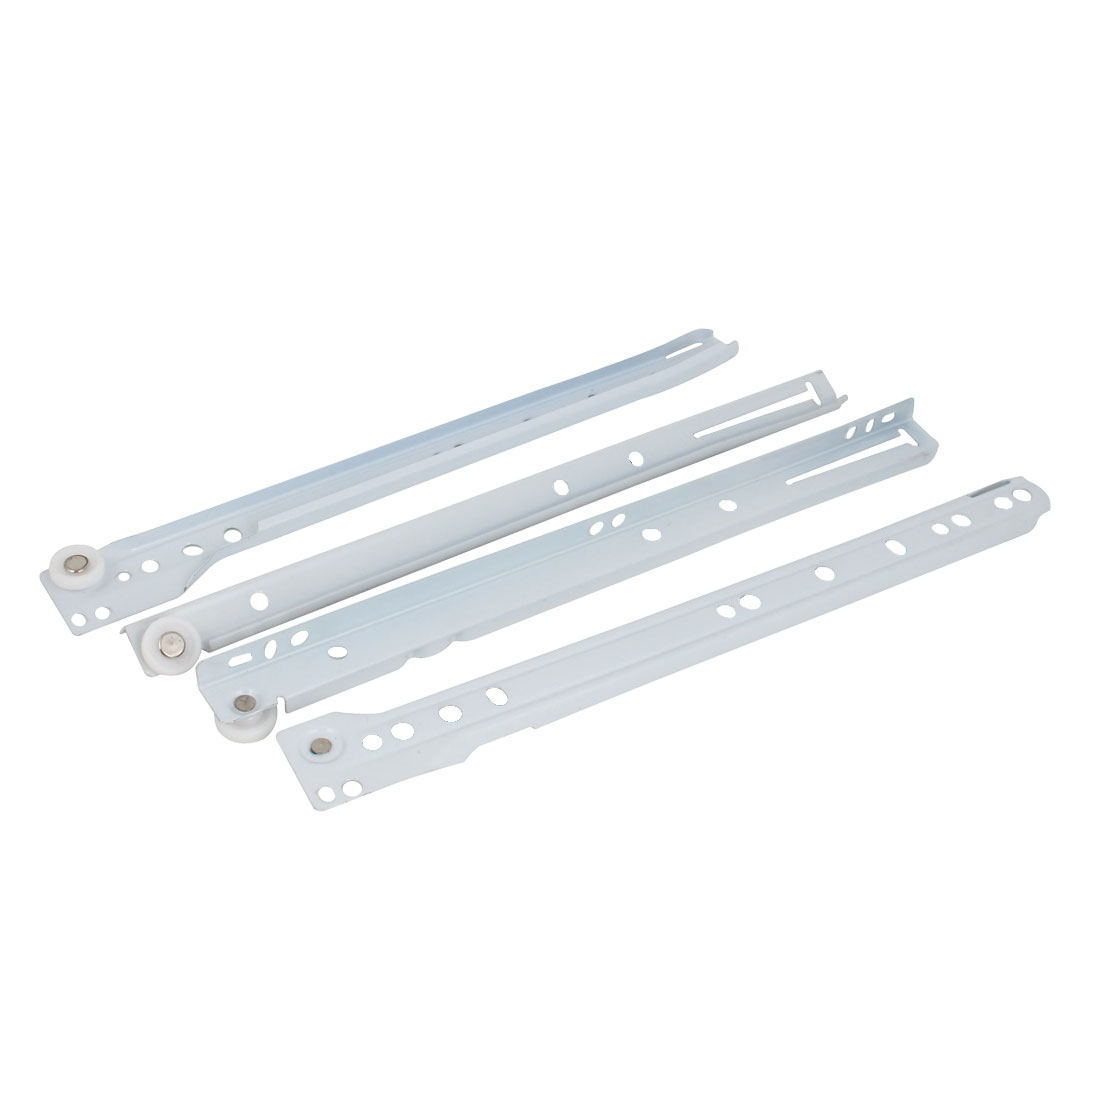 "2 Pairs 12"" Length White Side Mount Drawer Slides Runner Rail Track Hardware"